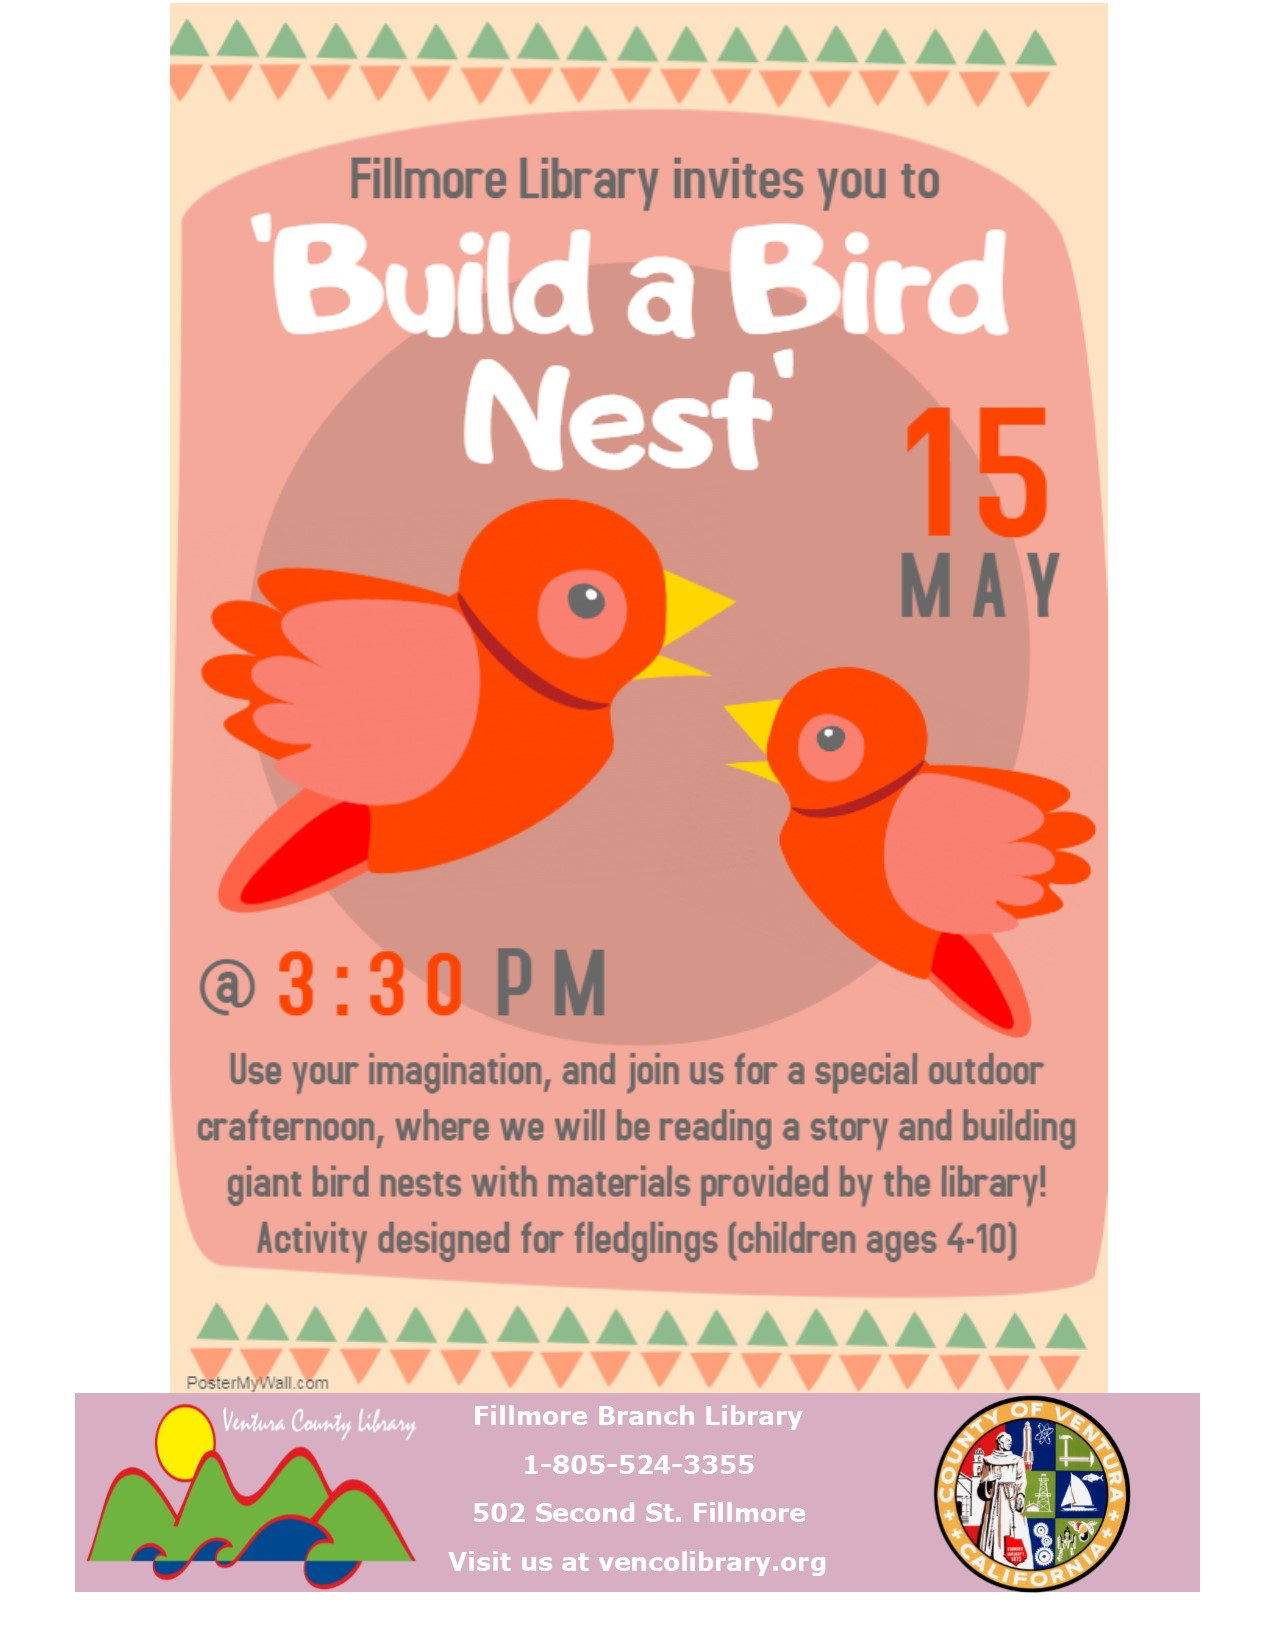 Flyer for event, info in calendar listing. Flyer is colorful and has a couple of birds on it.